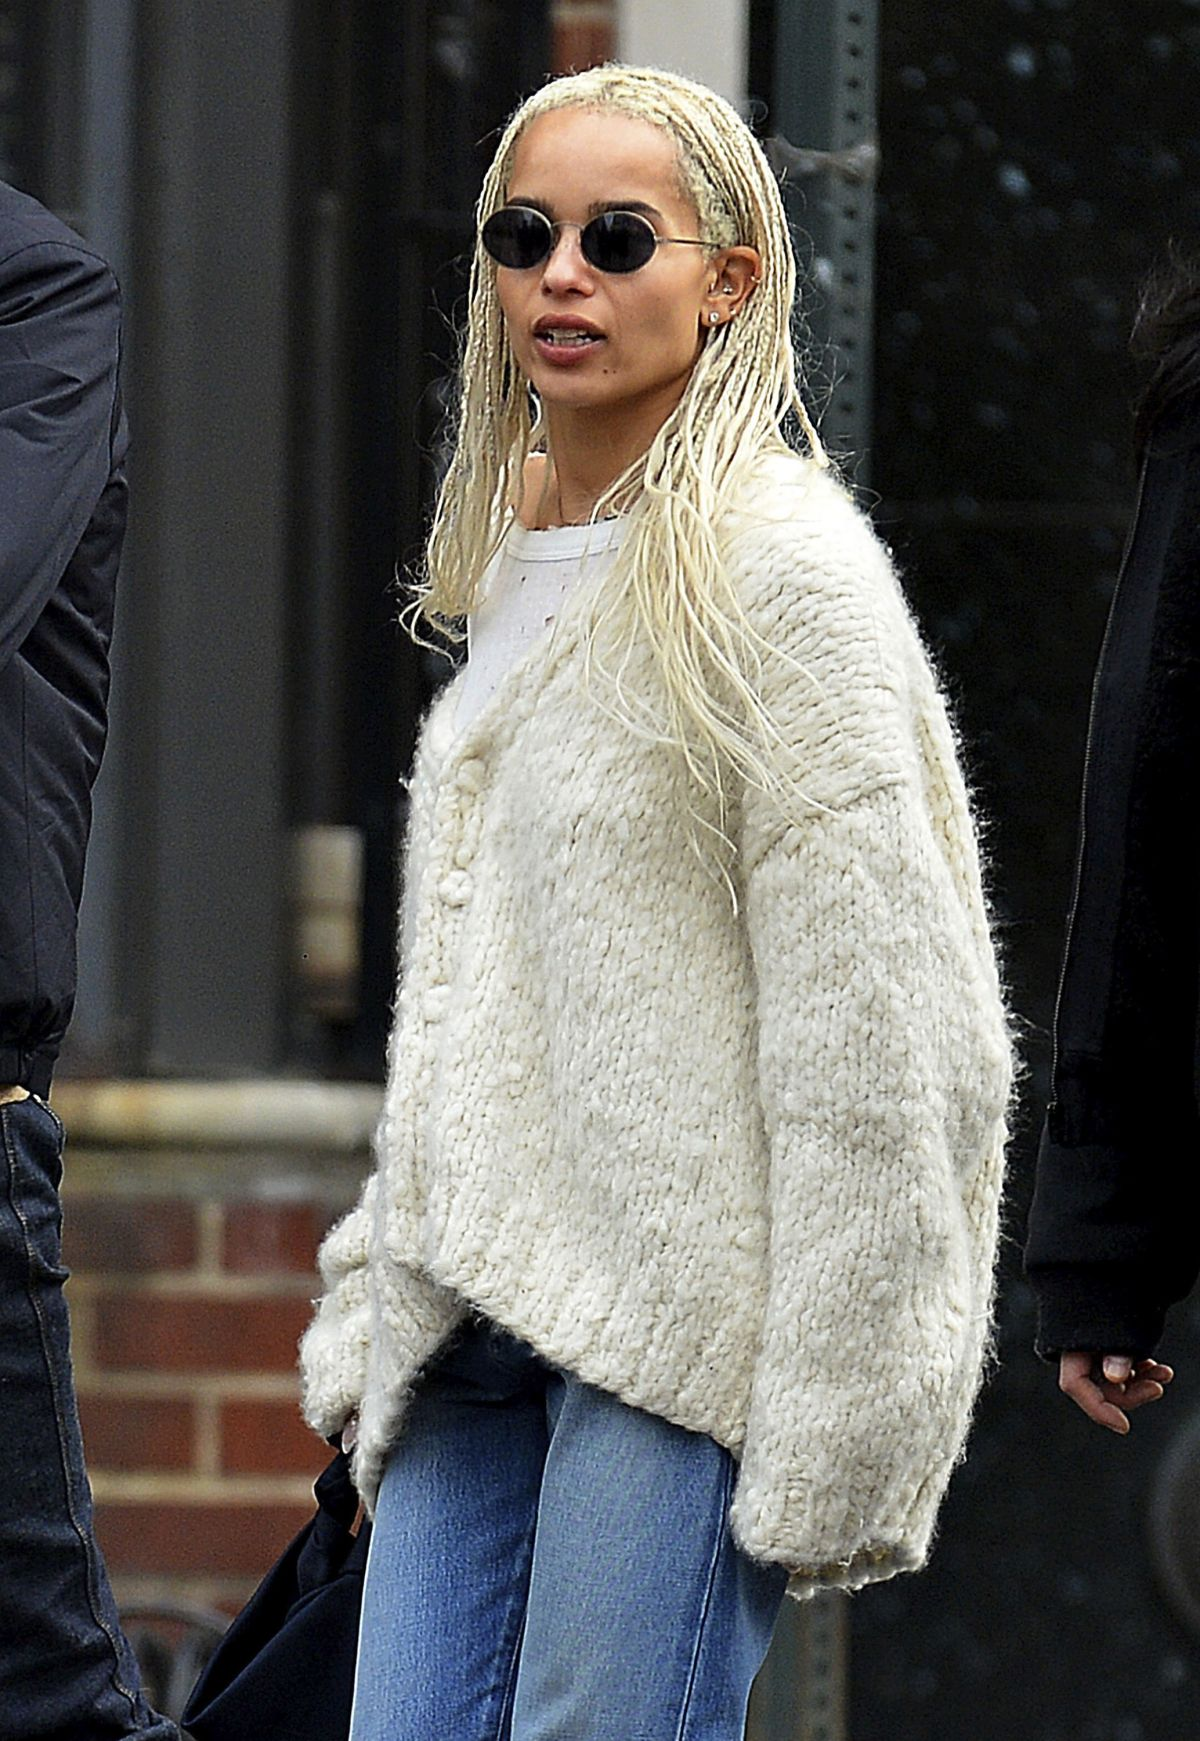 Zoe kravitz out and about in new york 03 25 2017 for Bureau zoe new york